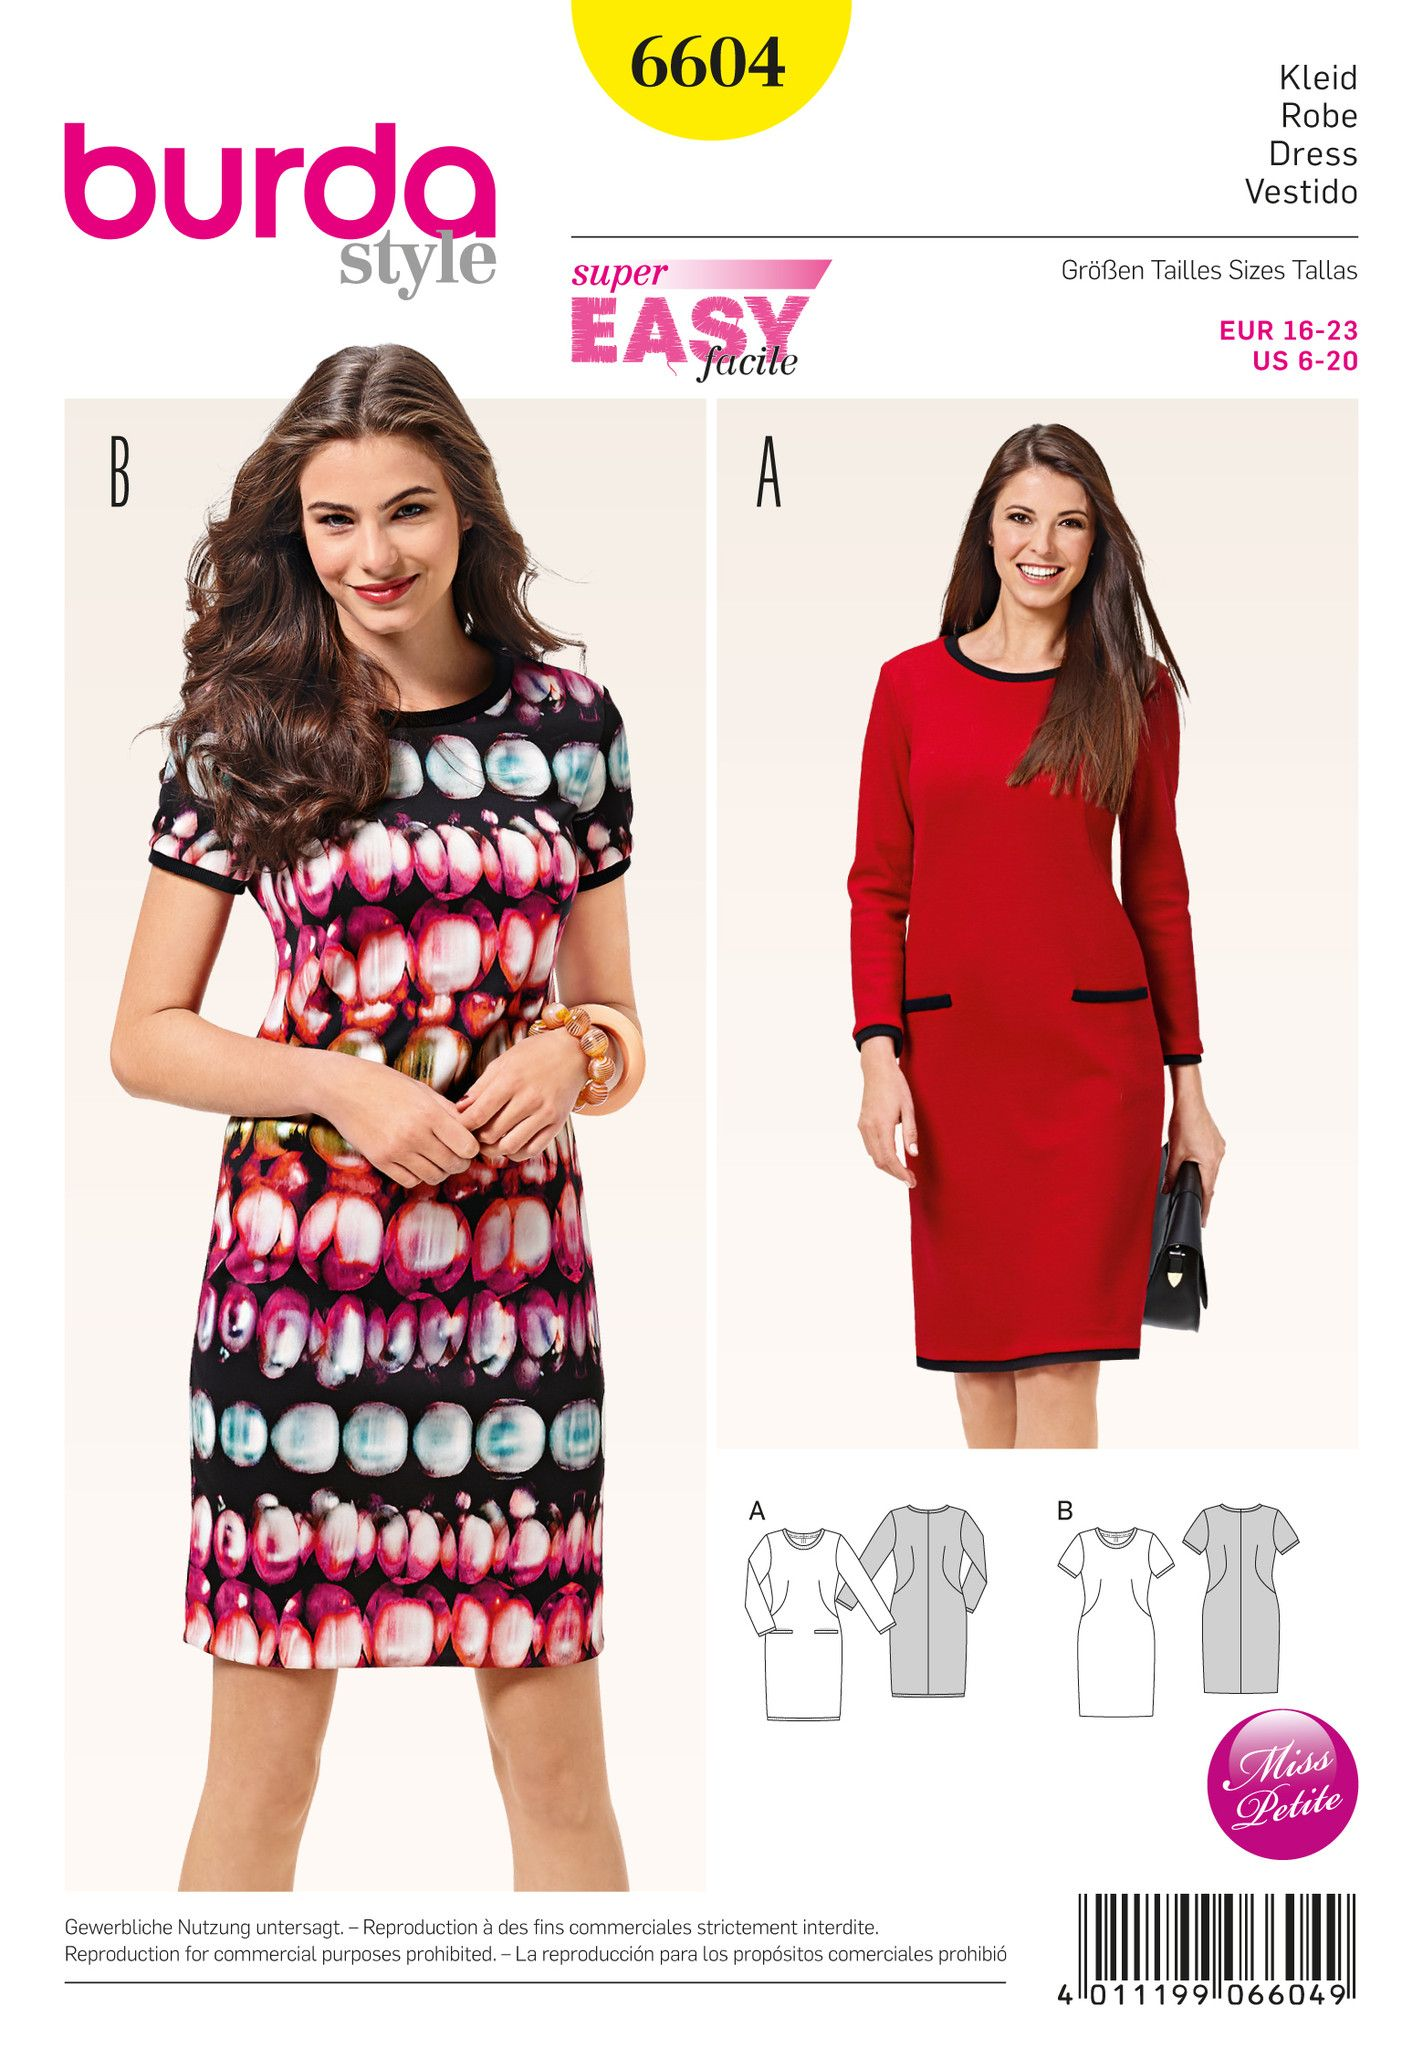 Bd6604 burda style pattern 6604 dress dressmaking pinterest bd6604 burda style pattern 6604 dress bankloansurffo Images